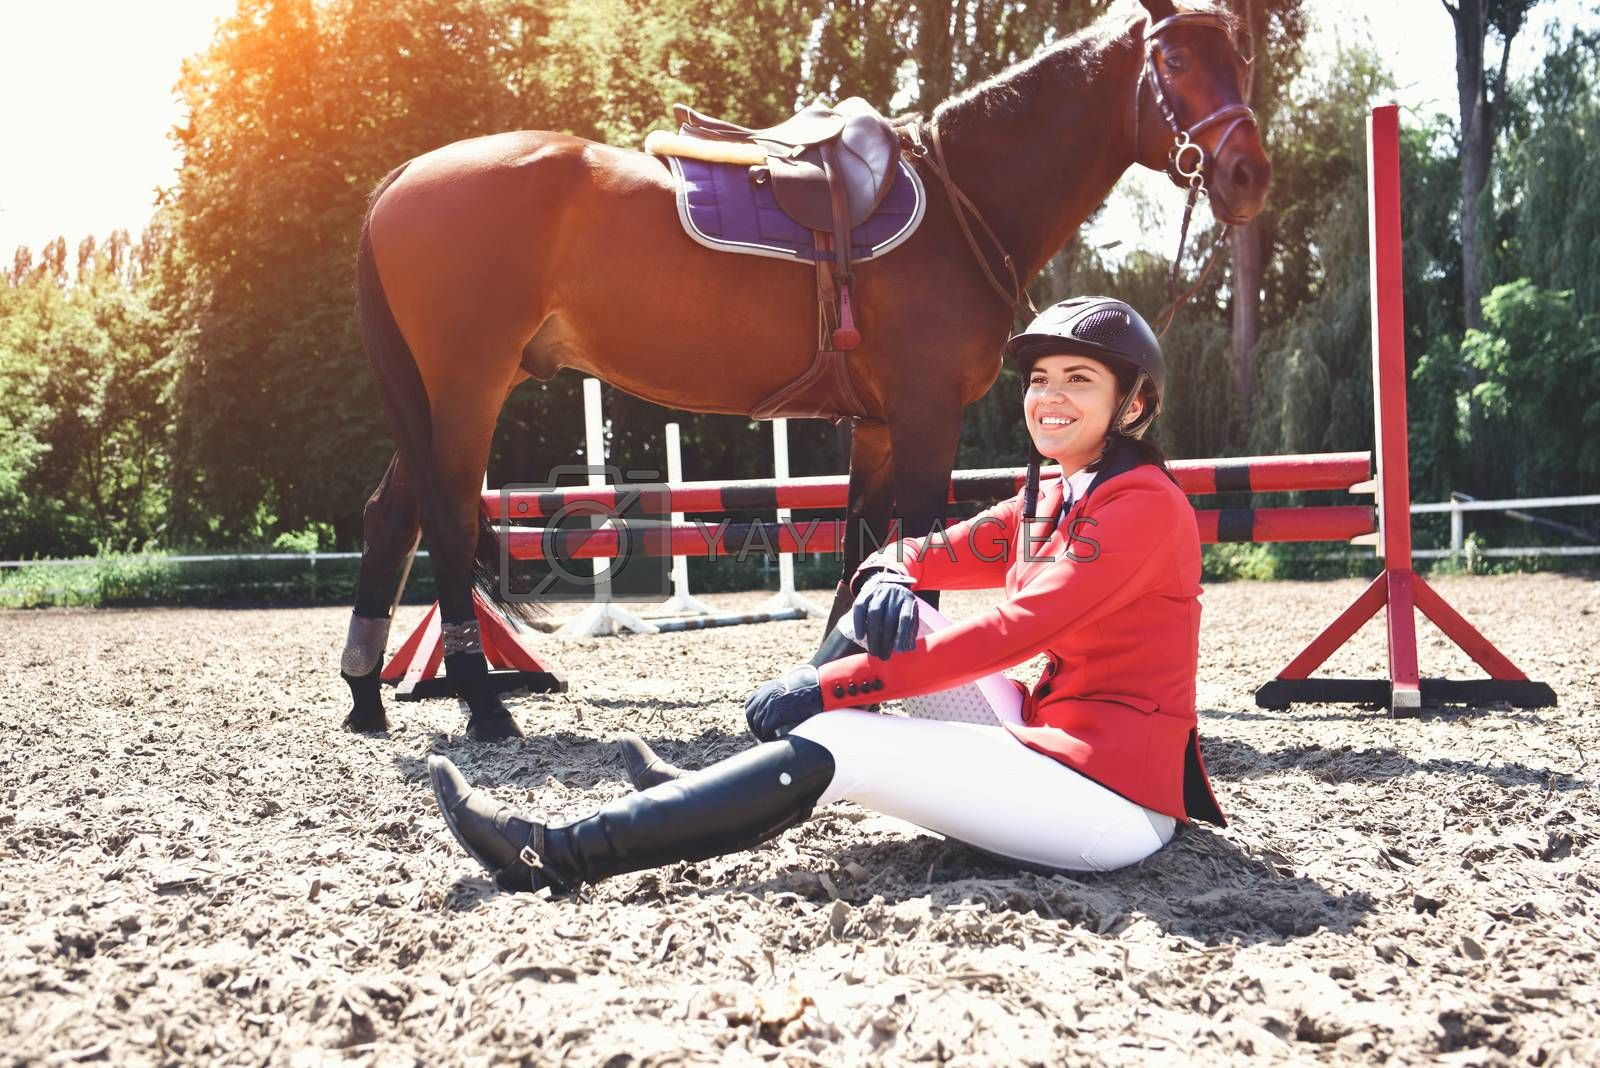 young jockey and her horse posing after training. She loves the animals and joyfully spends her time in their environment.